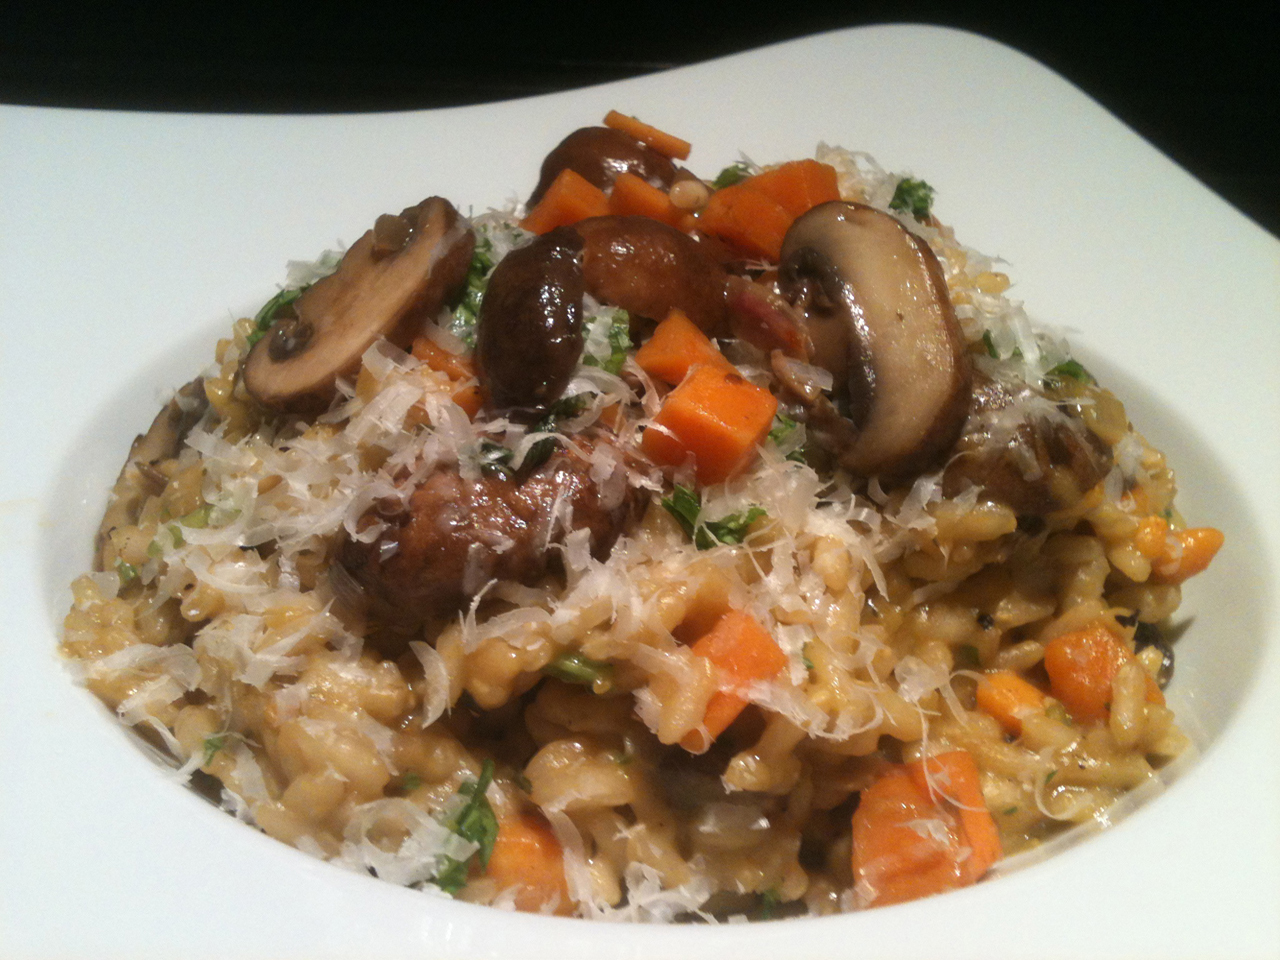 Eat to Beat: Risotto with Mushrooms and Sweet Potato